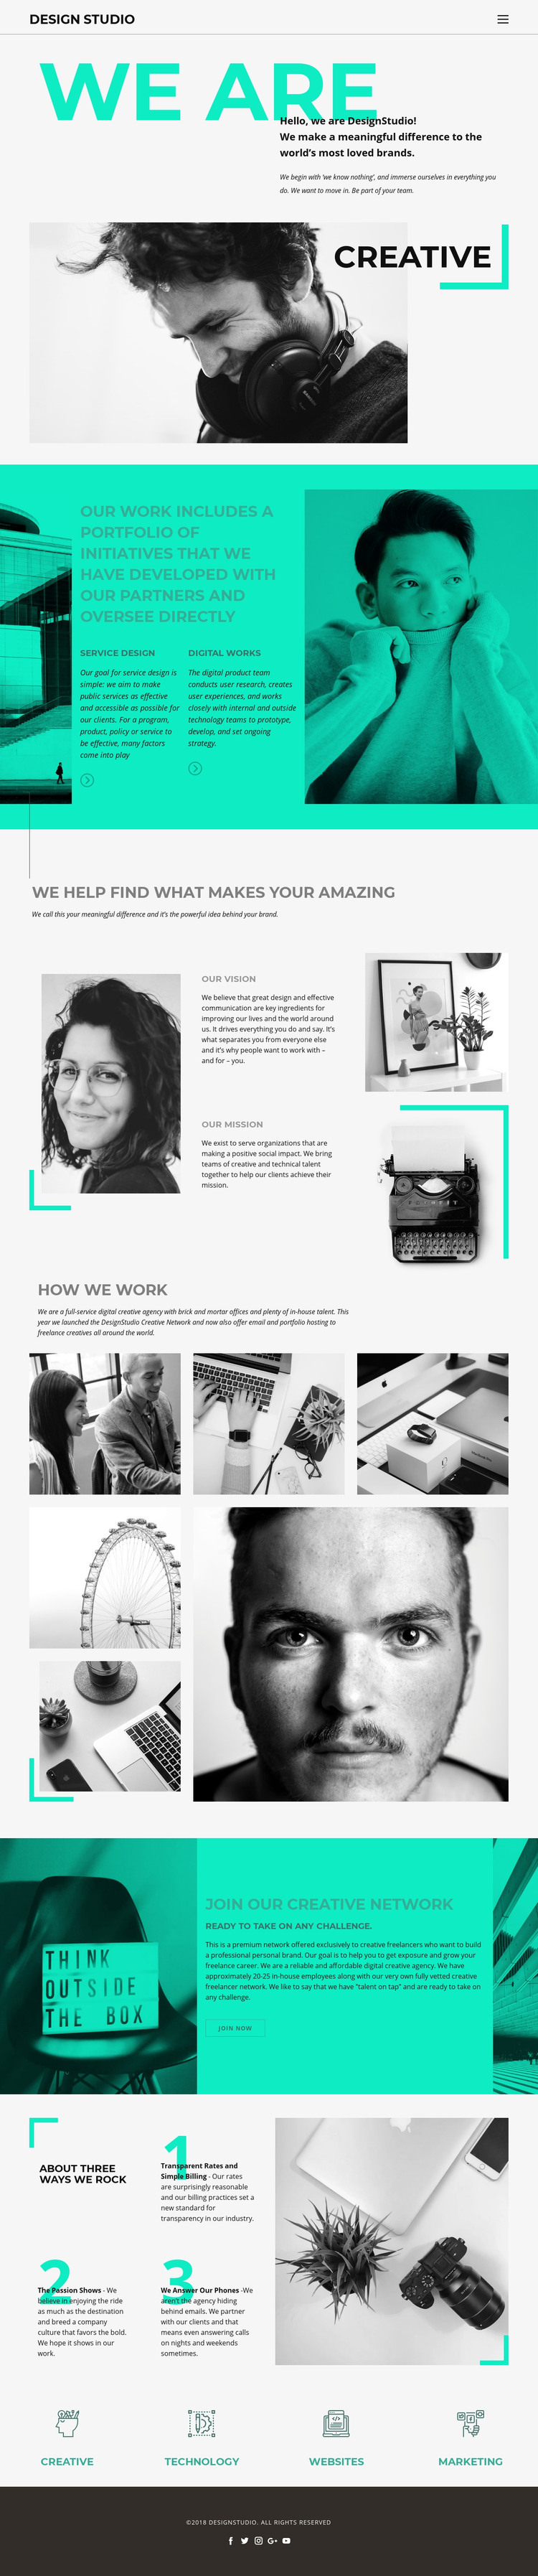 We are creative business Homepage Design